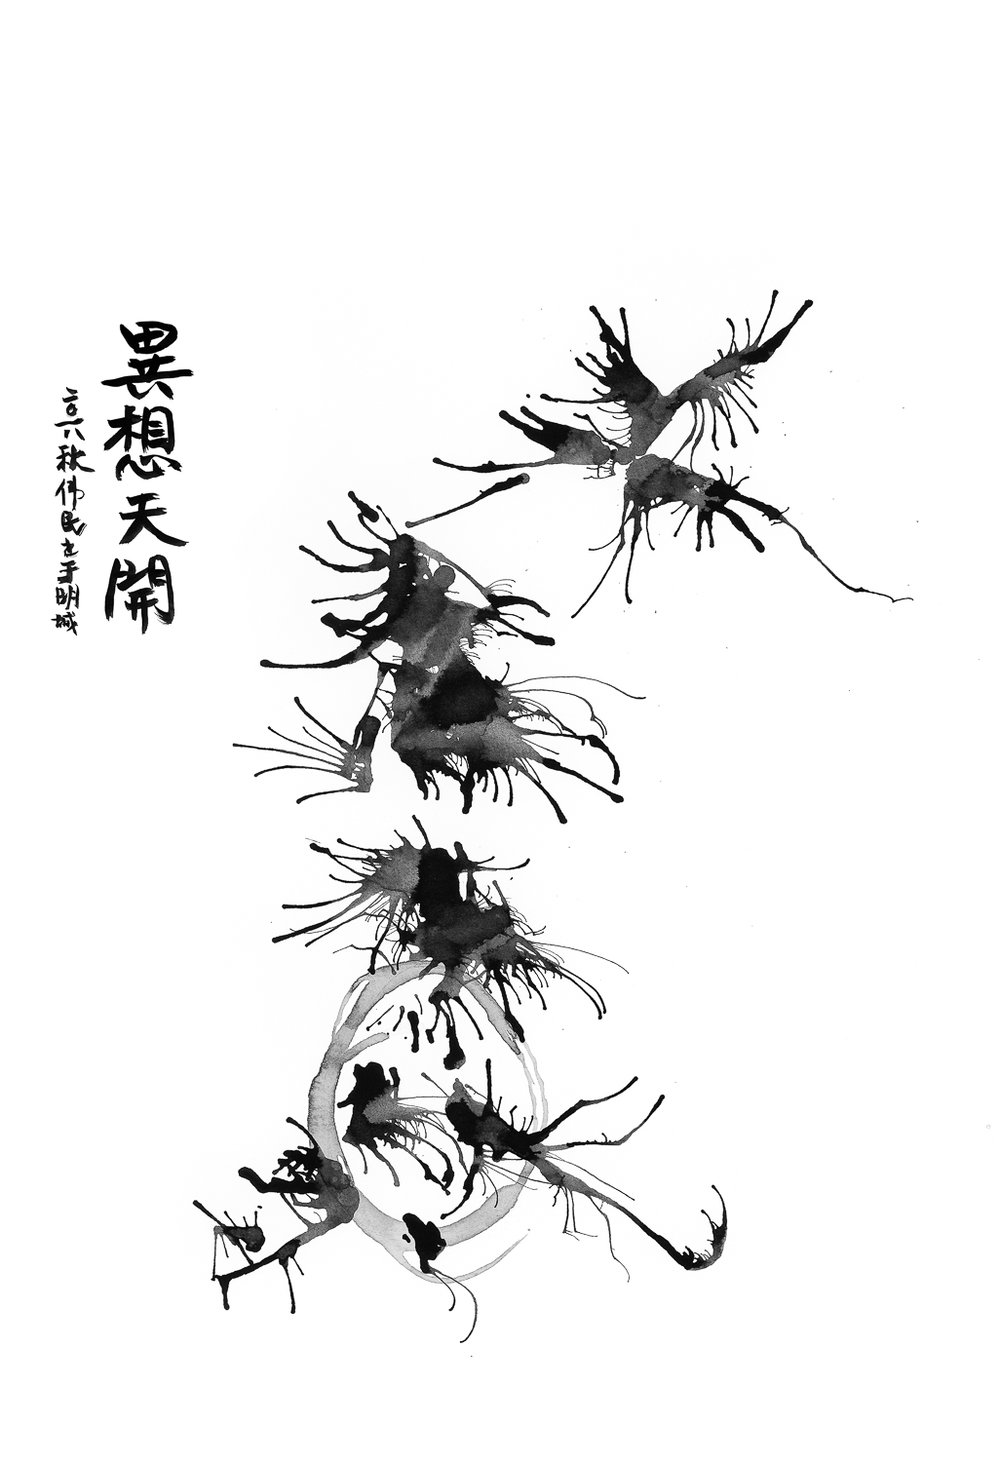 Calligraphy by Weiming Lu, Ink Drawing by Peg Palaskas